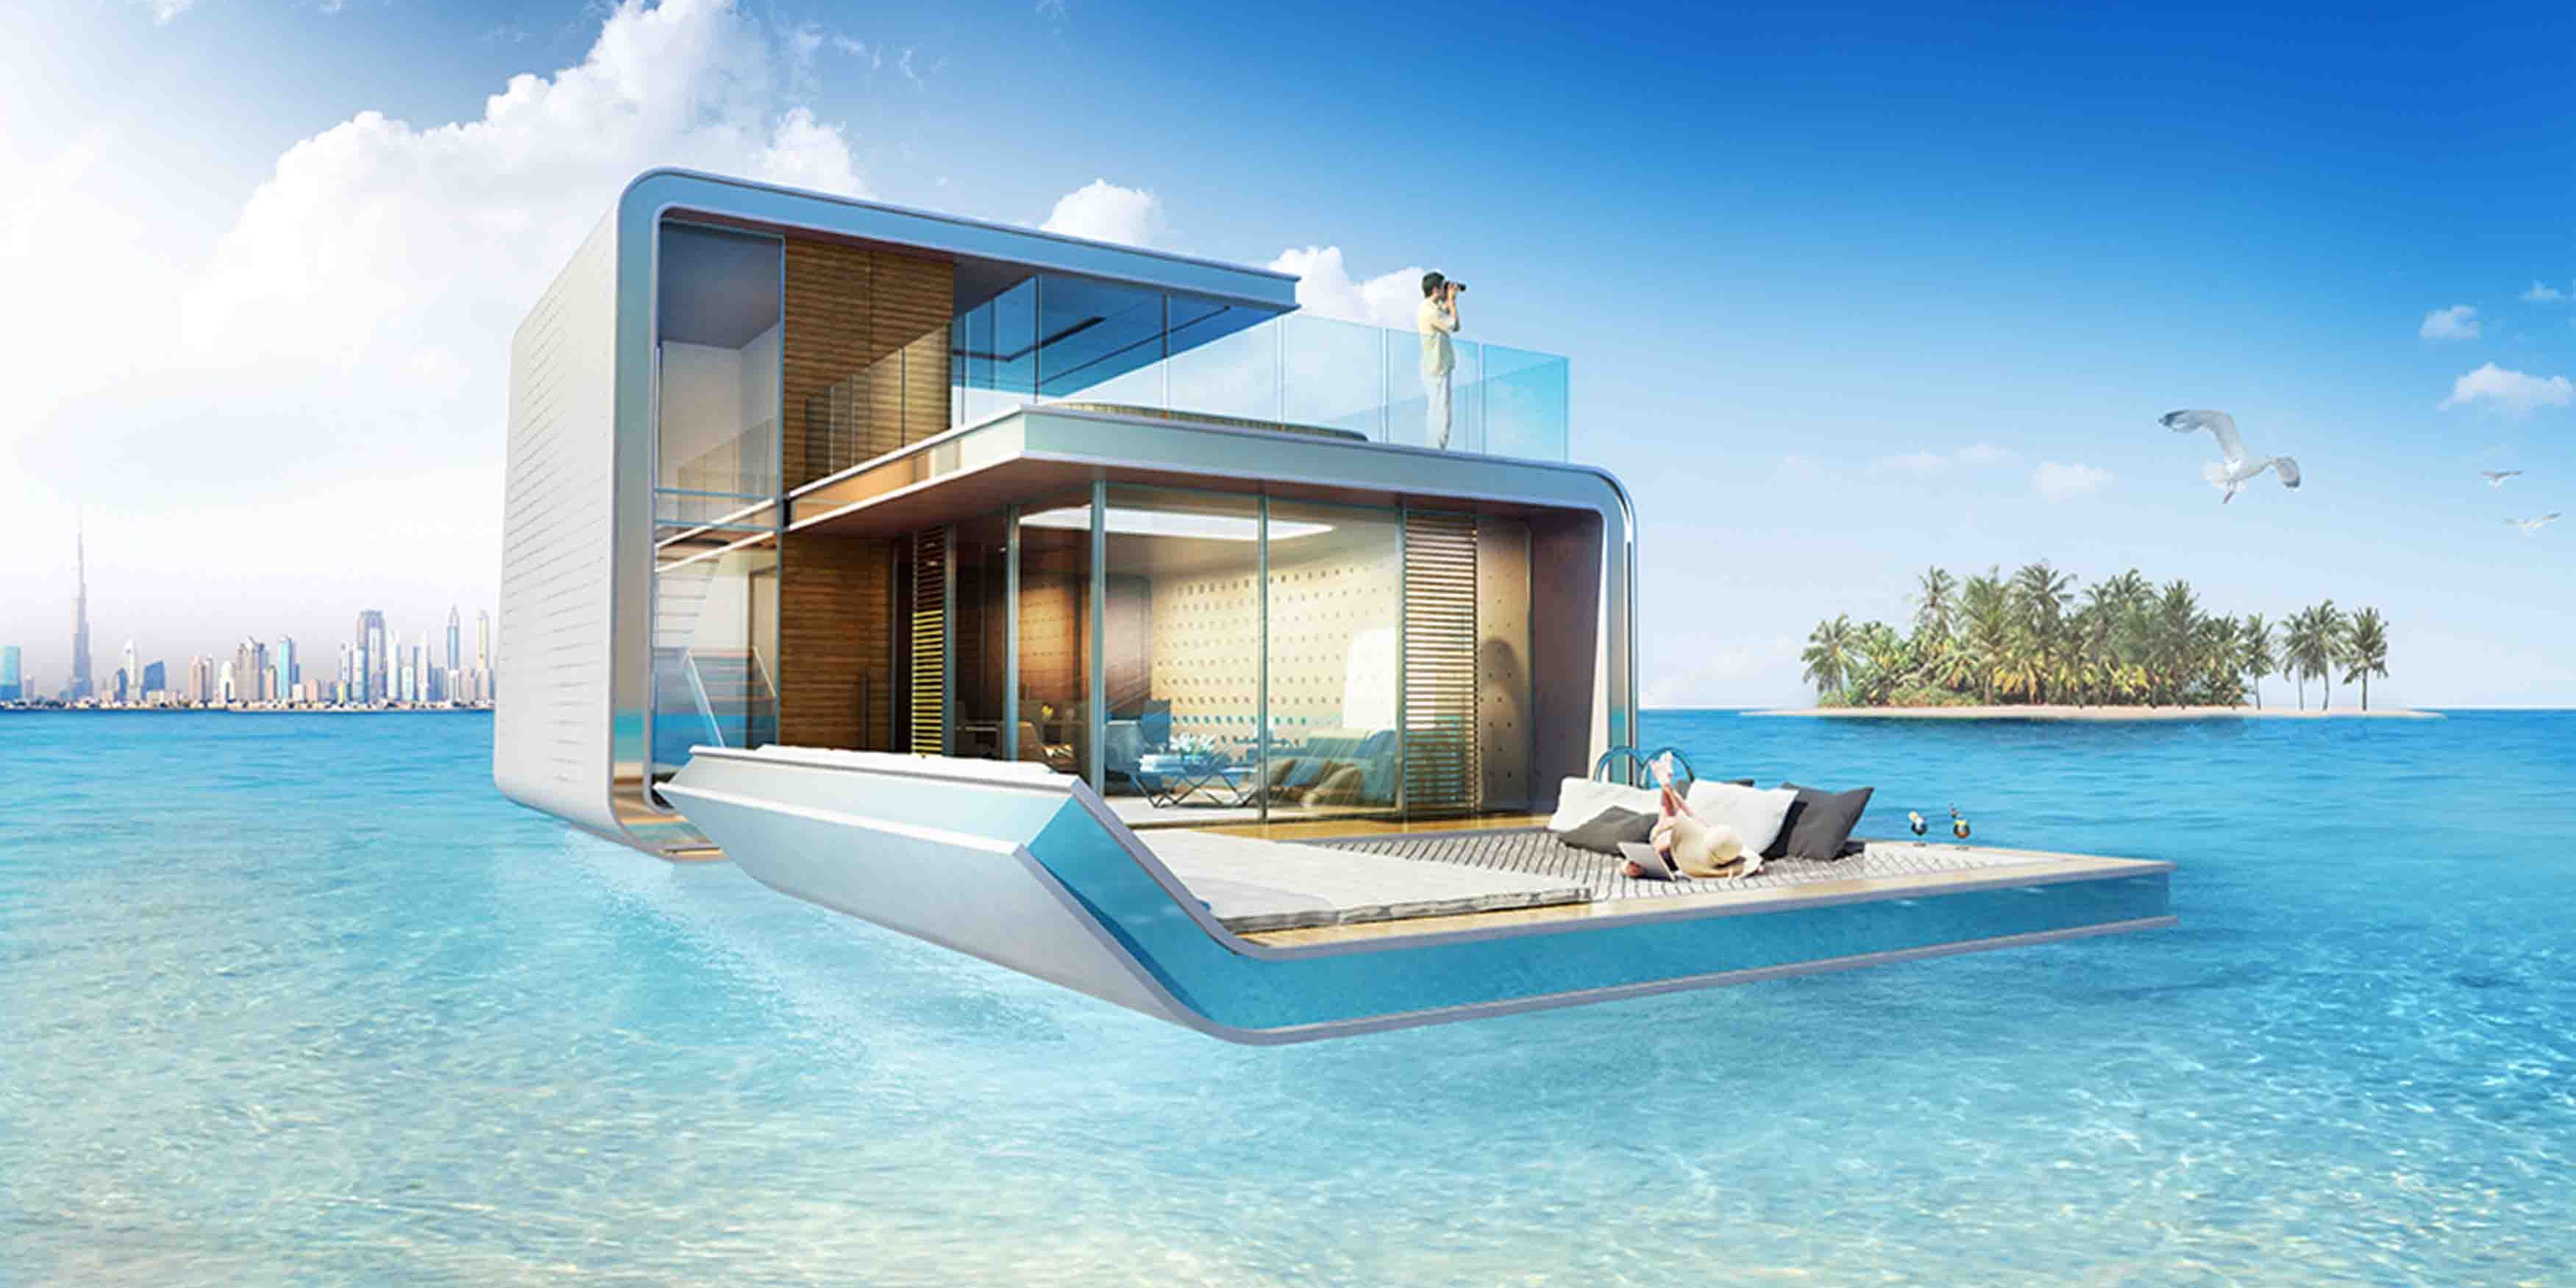 The Floating Houses Of Dubai